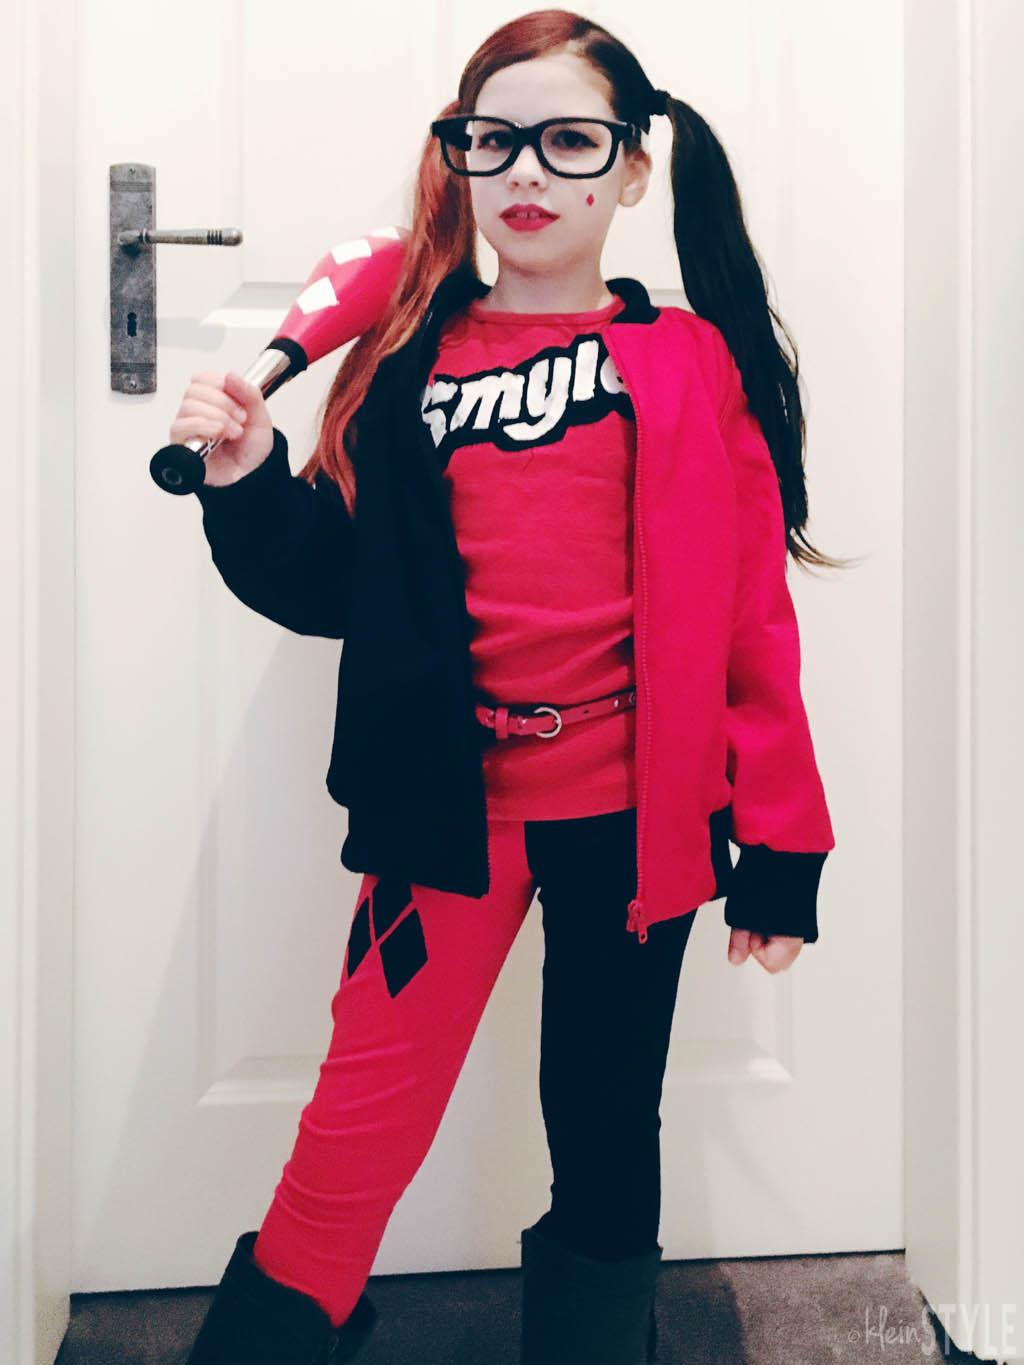 Harley Quinn LEGO Batman Movie Kids Costume Carnival Fasching Kostuem by kleinstyle.com Outfit